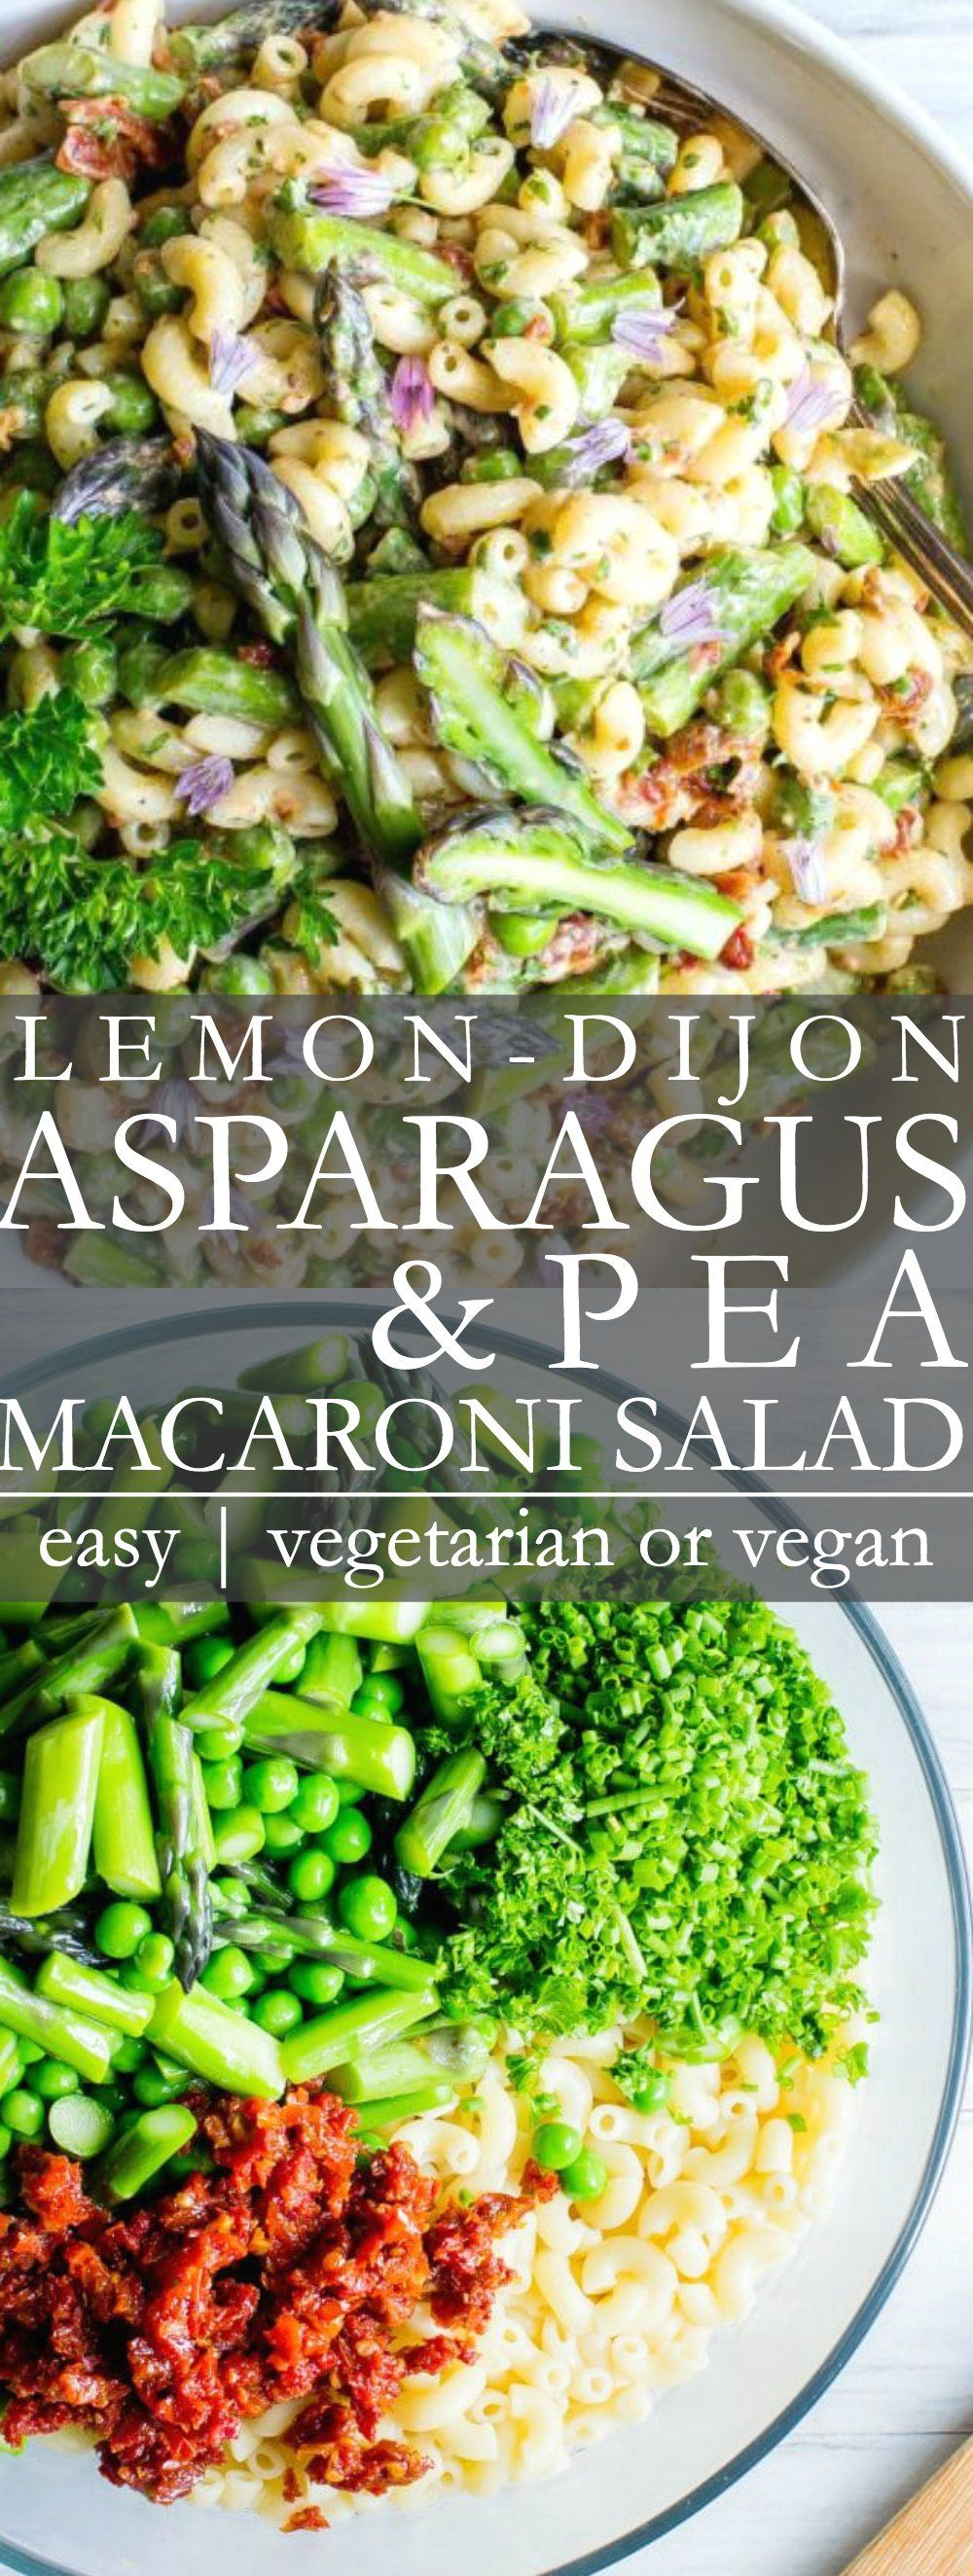 Lemon Dijon Asparagus and Pea Macaroni Salad